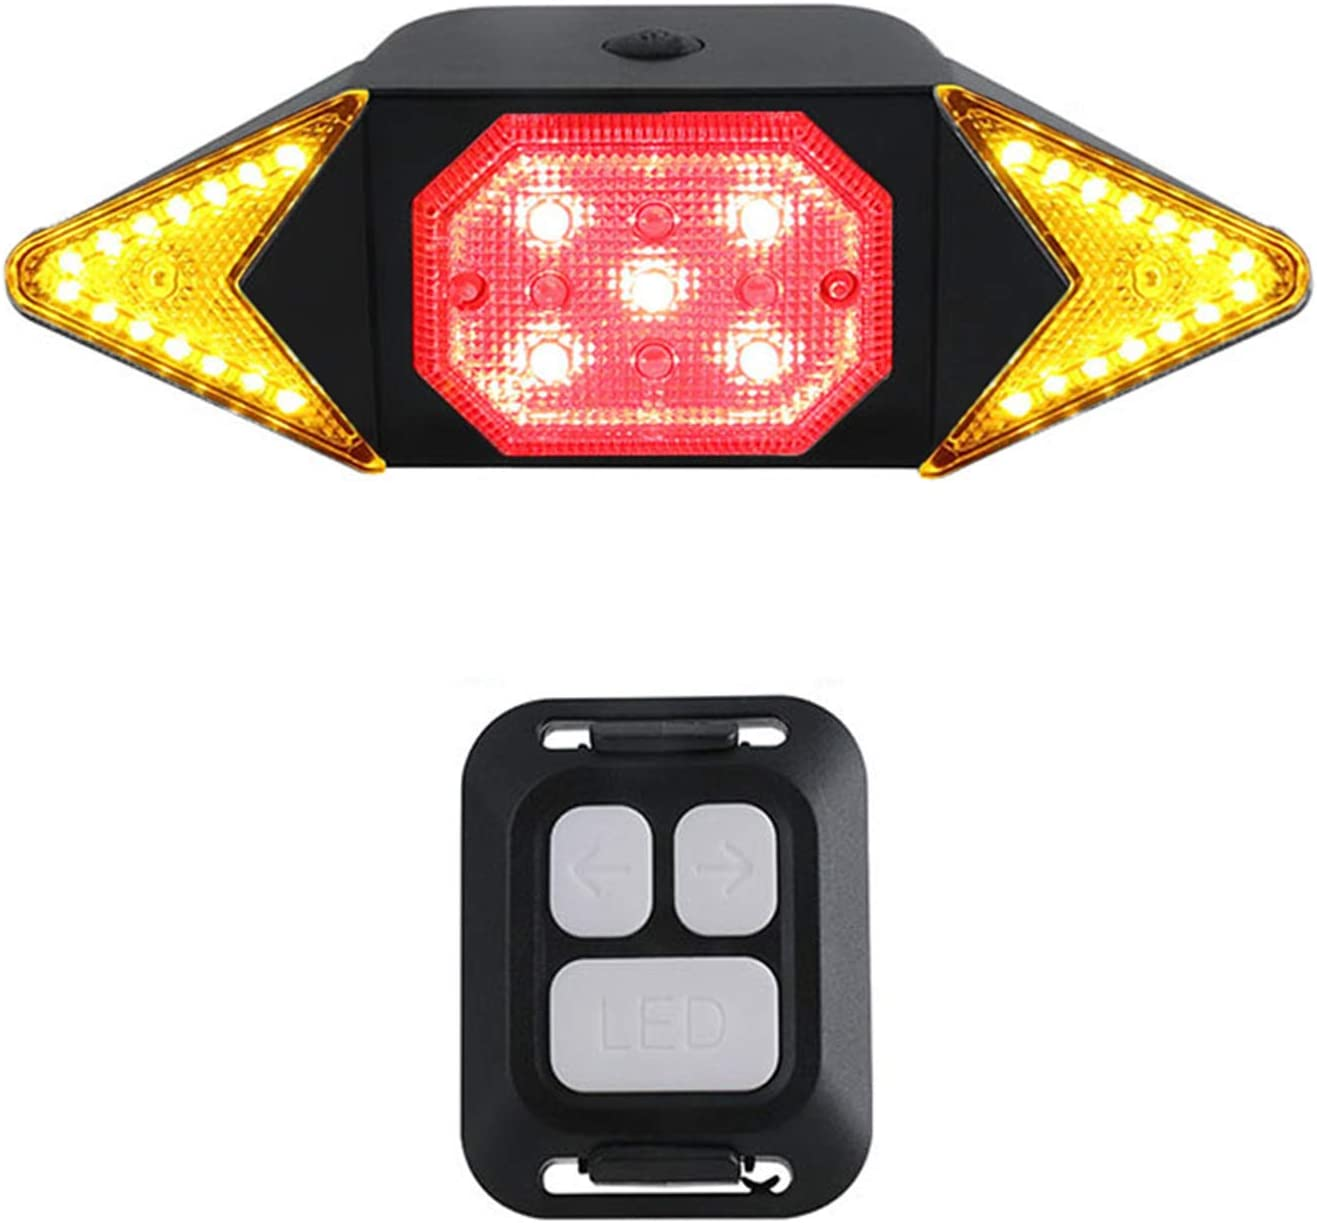 Bike Tail Light with Turn Easy-to-use C Signals LED 67% OFF of fixed price Rechargeable Waterproof